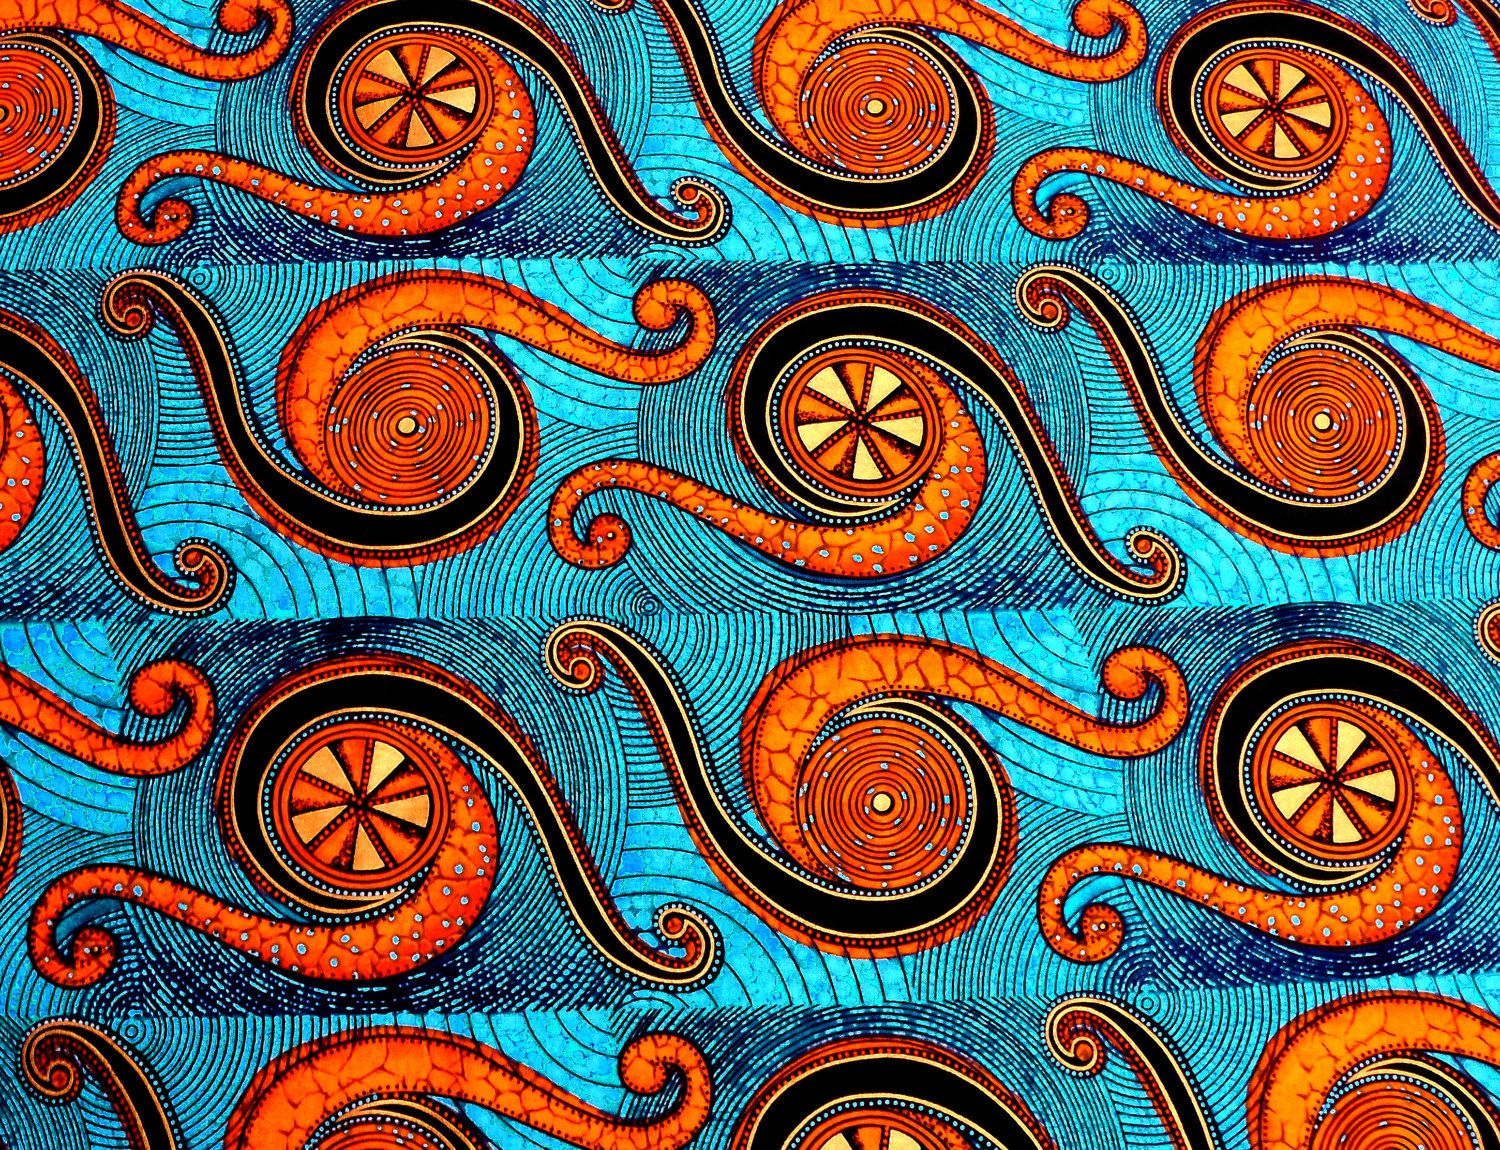 2 Yards of Original African Fabric from the SHAMASH & Sons ... - photo#14